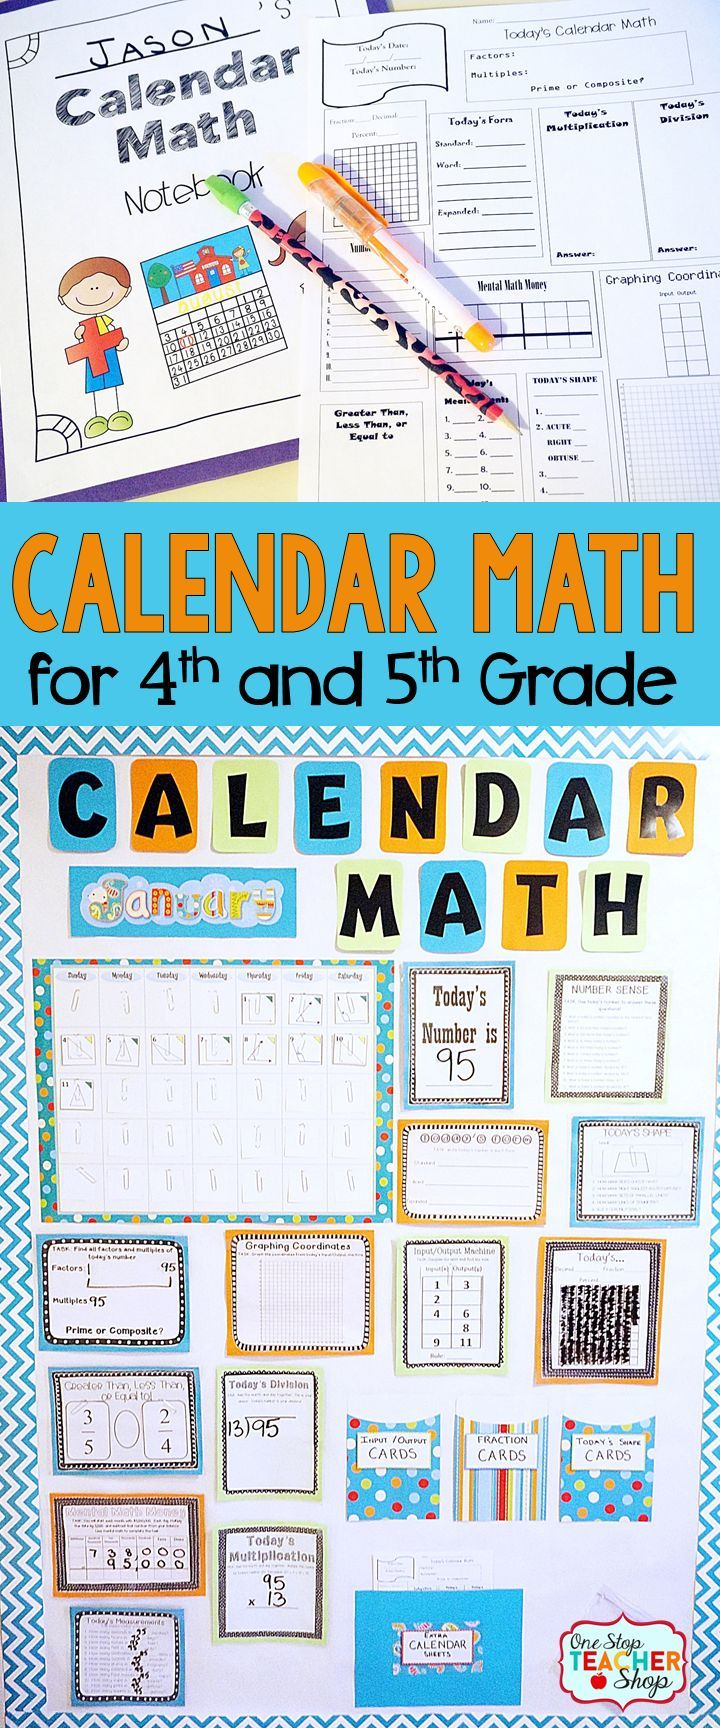 Calendar Review Worksheets : Calendar math bundle for daily review maths